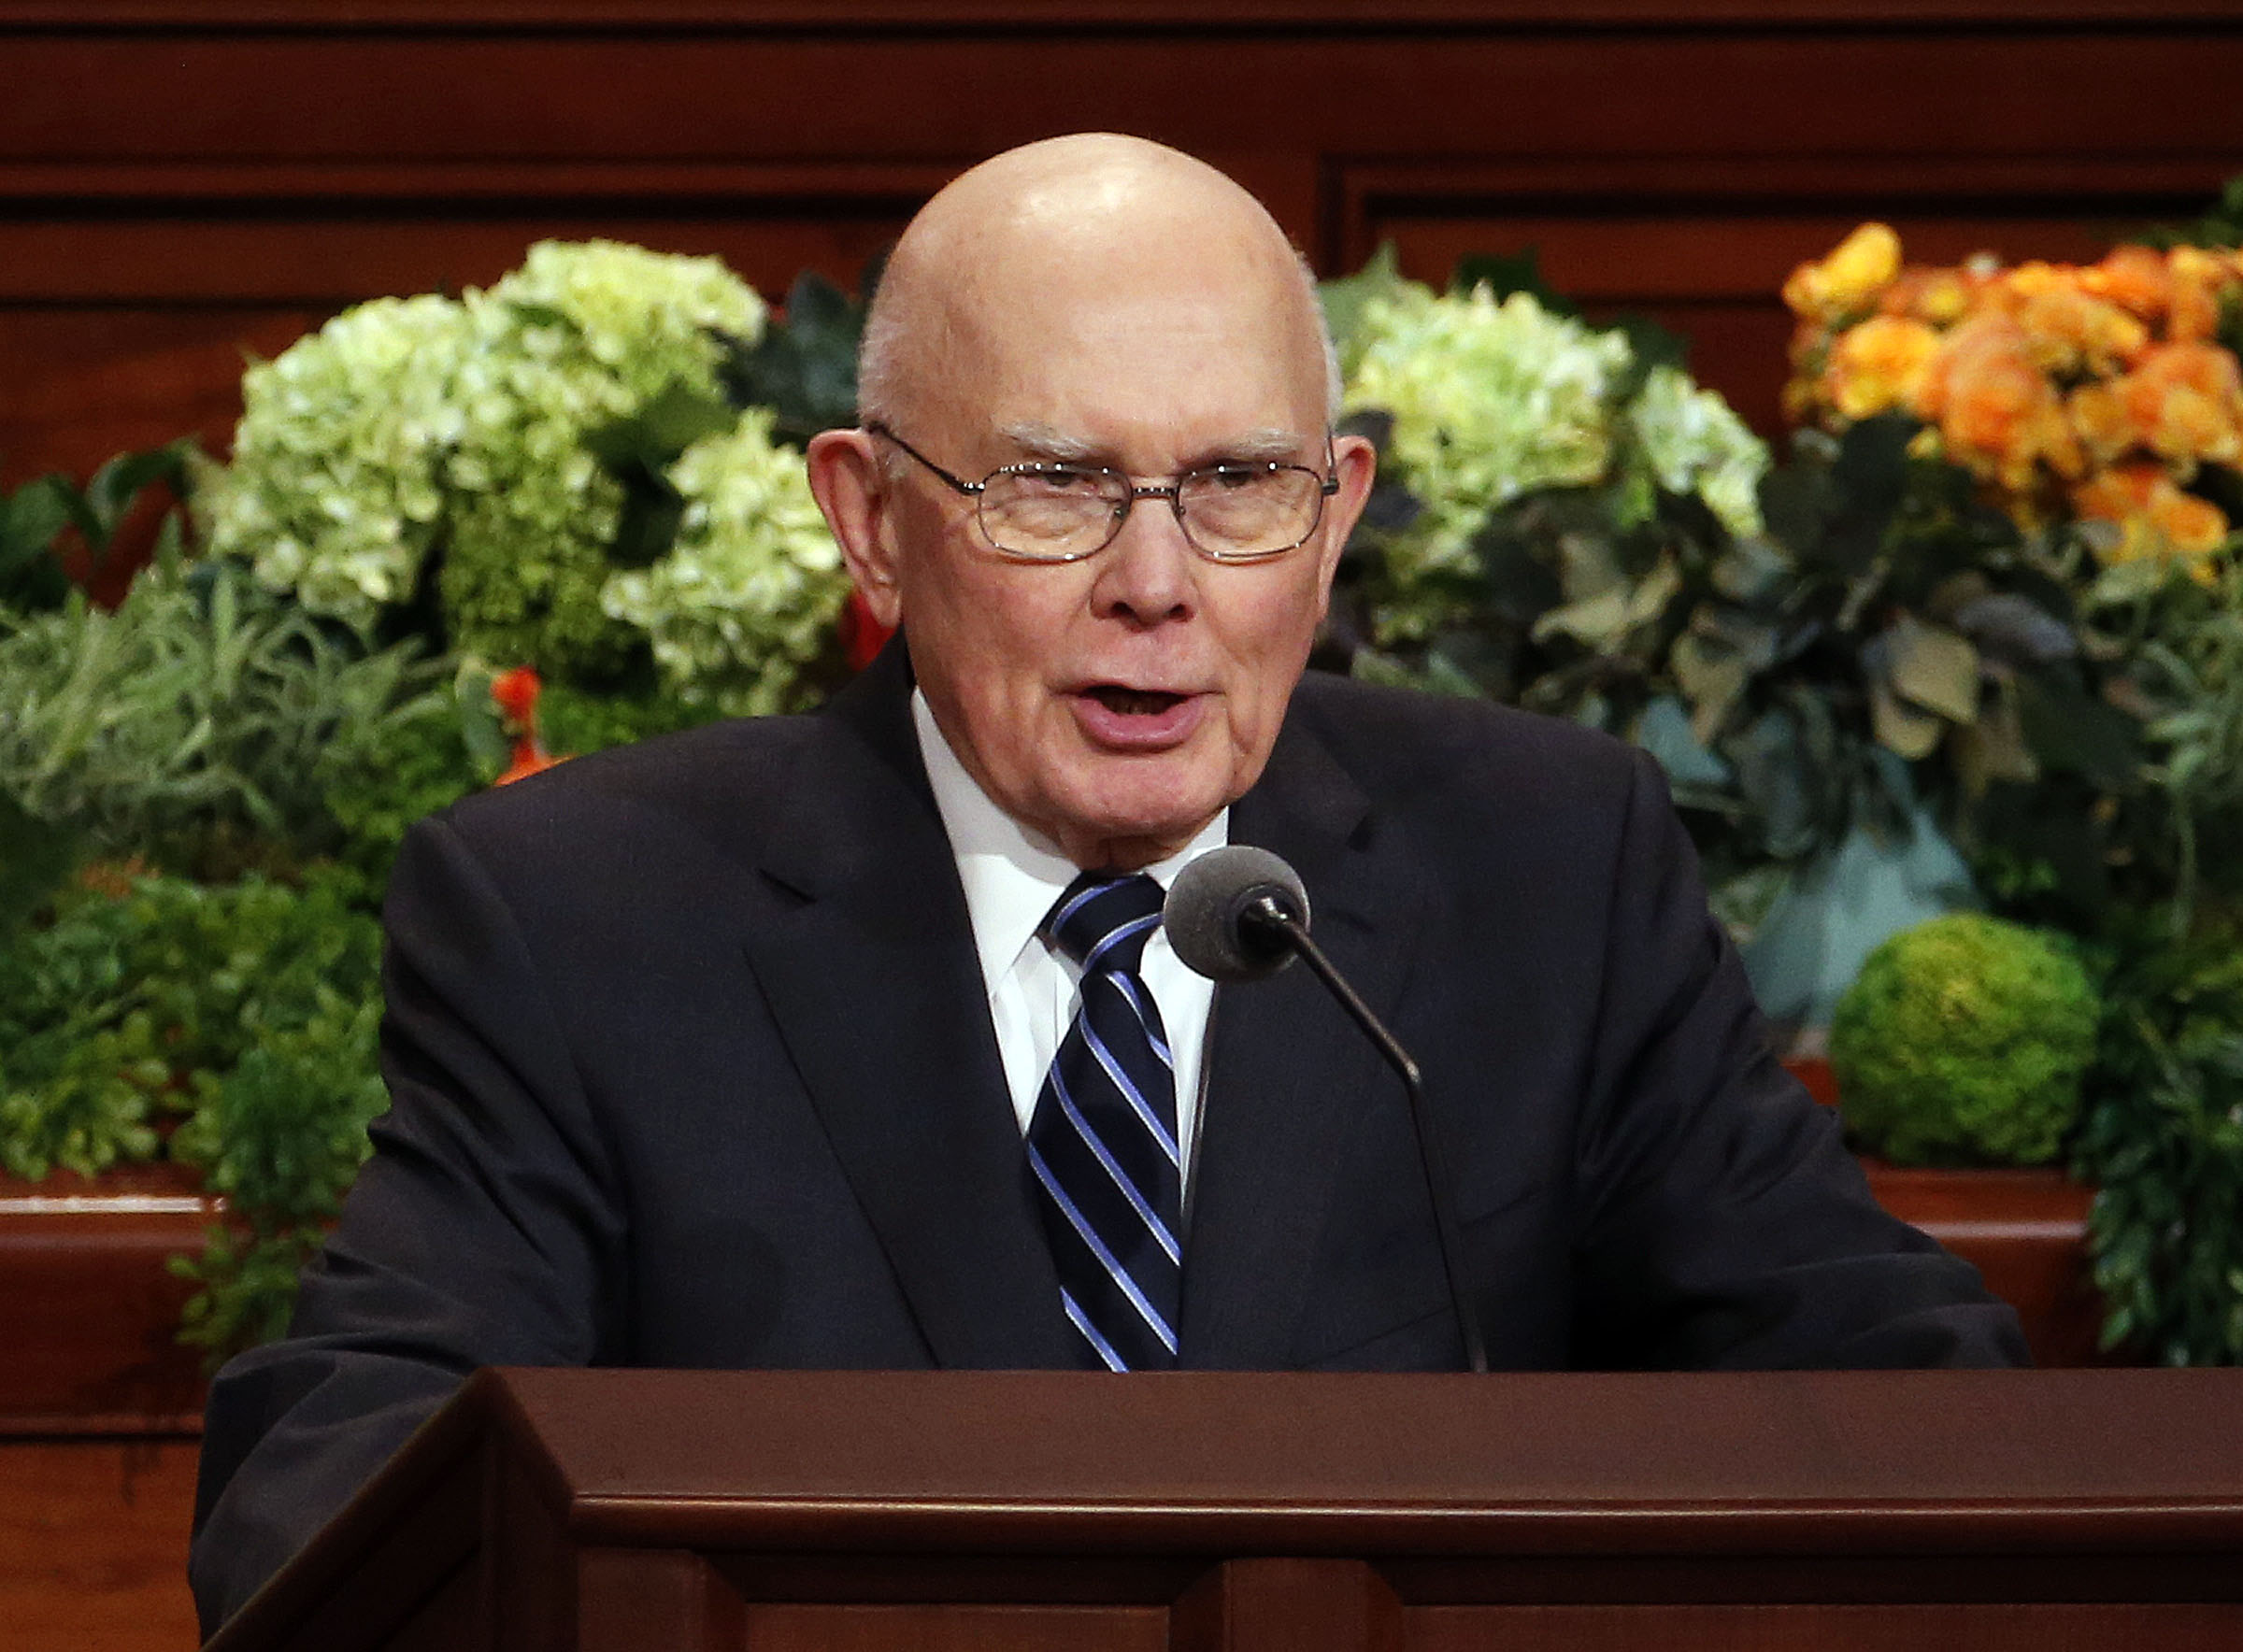 President Dallin H. Oaks, first counselor in the First Presidency of The Church of Jesus Christ of Latter-day Saints, conducts the priesthood session of the 189th Annual General Conference in the Conference Center in Salt Lake City on Saturday, April 6, 2019.